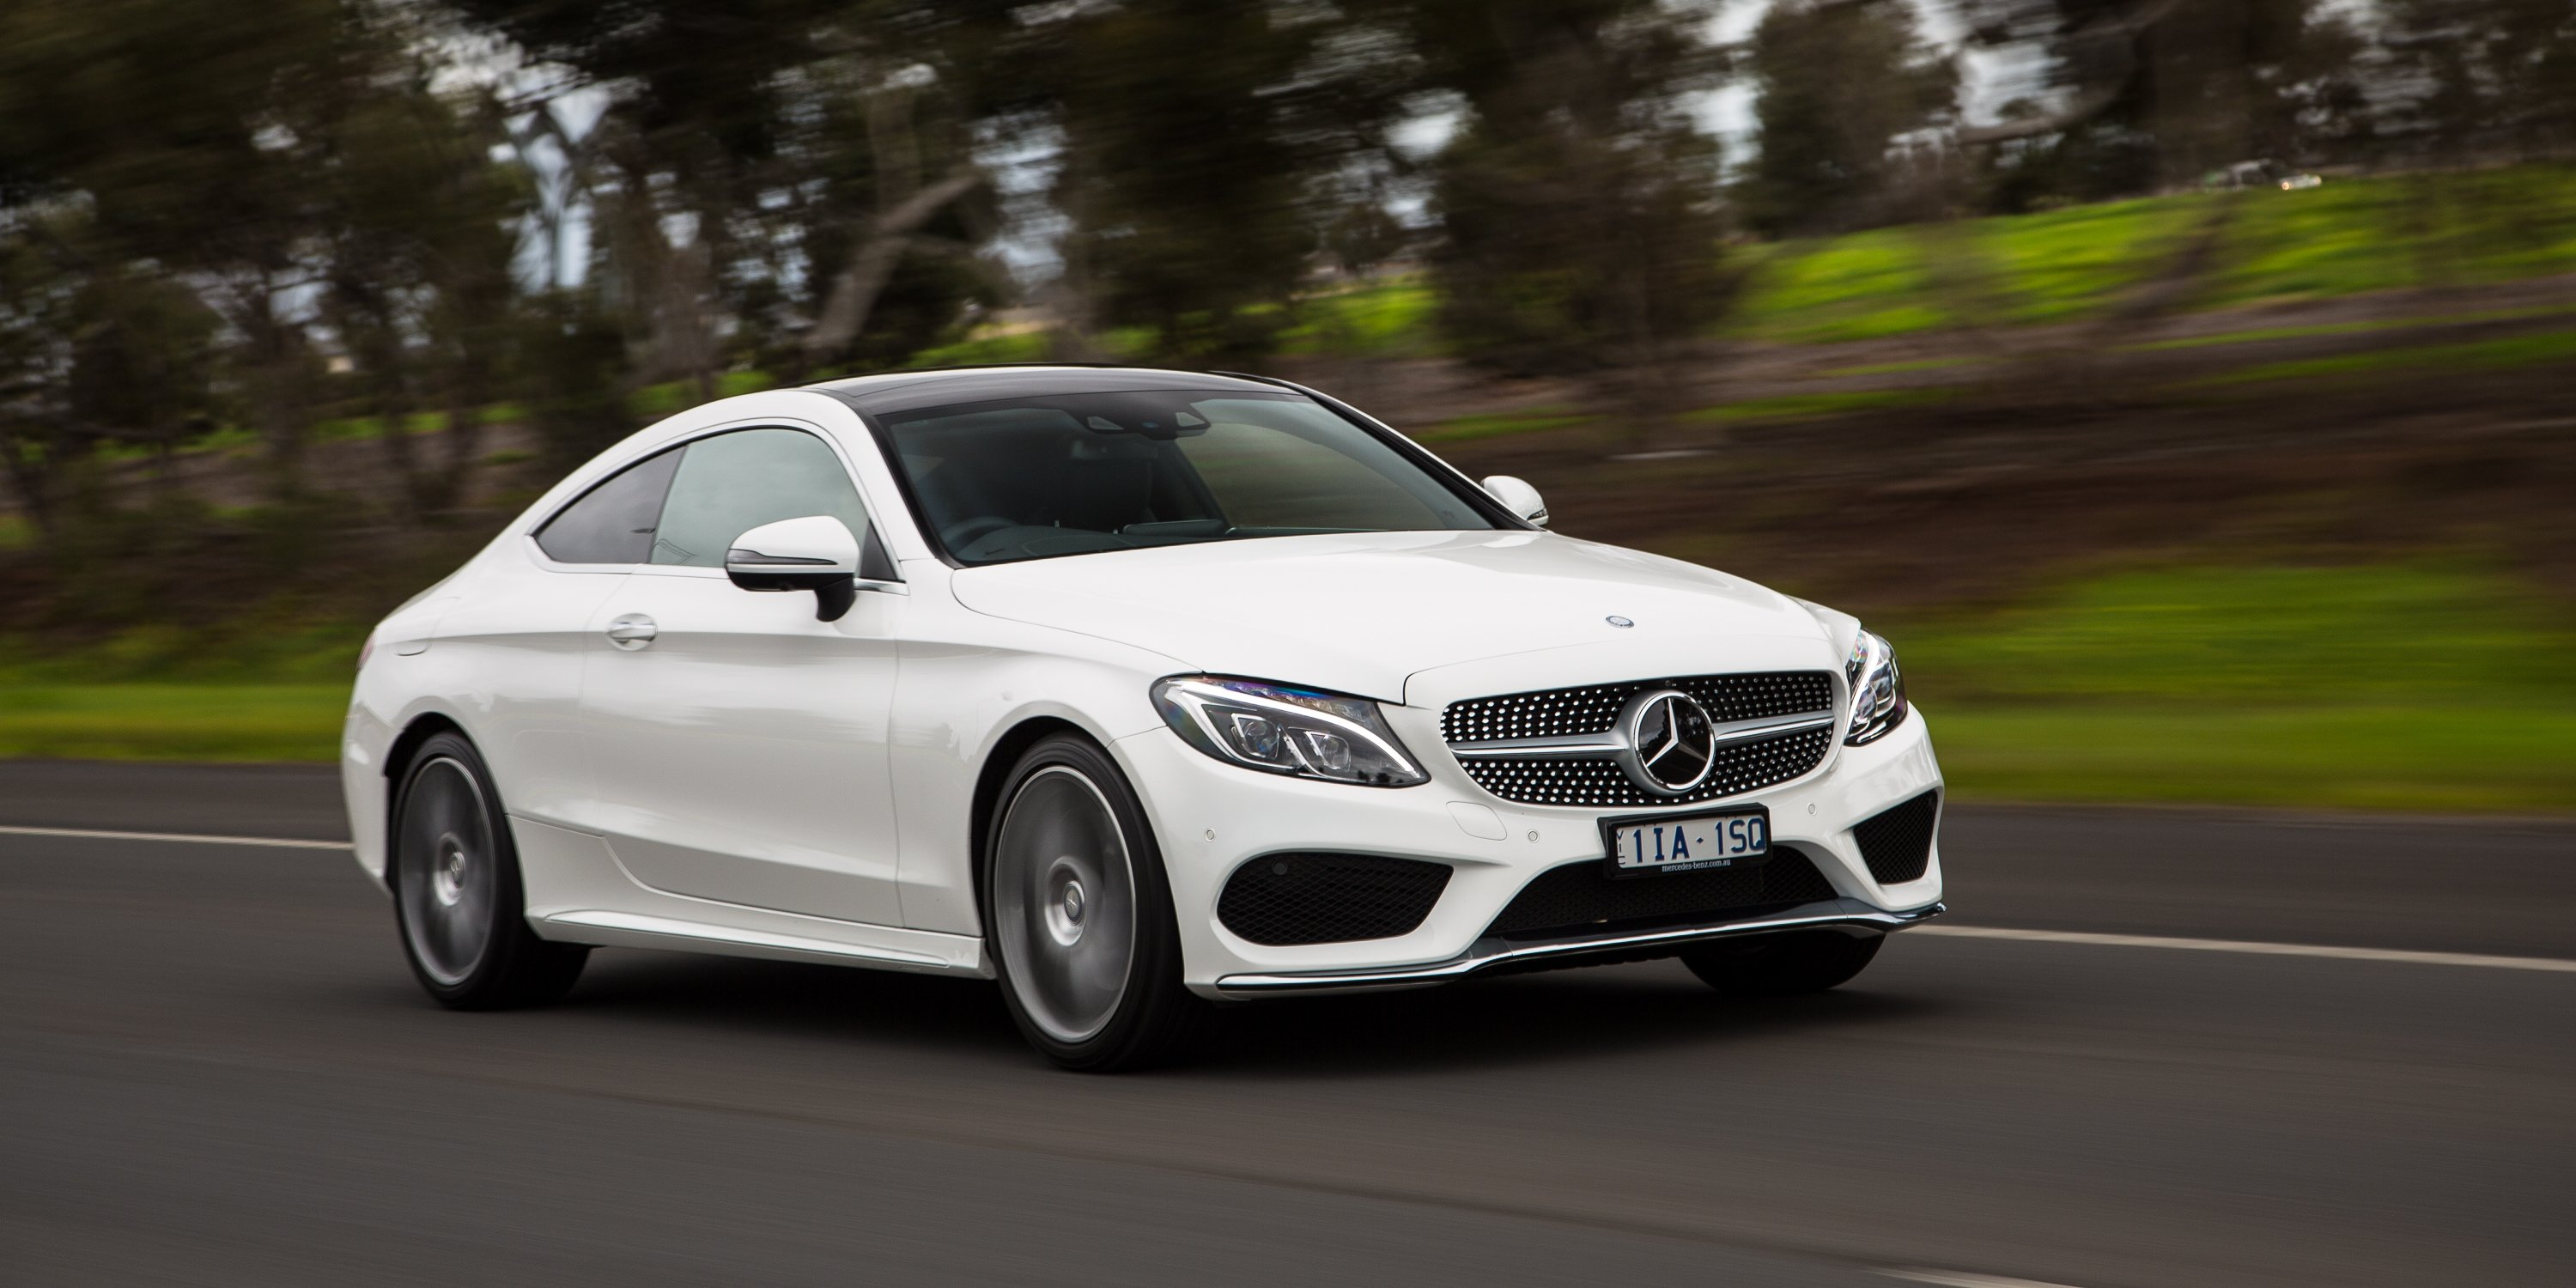 2016 Mercedes-Benz C300 Coupe v BMW 430i comparison ...